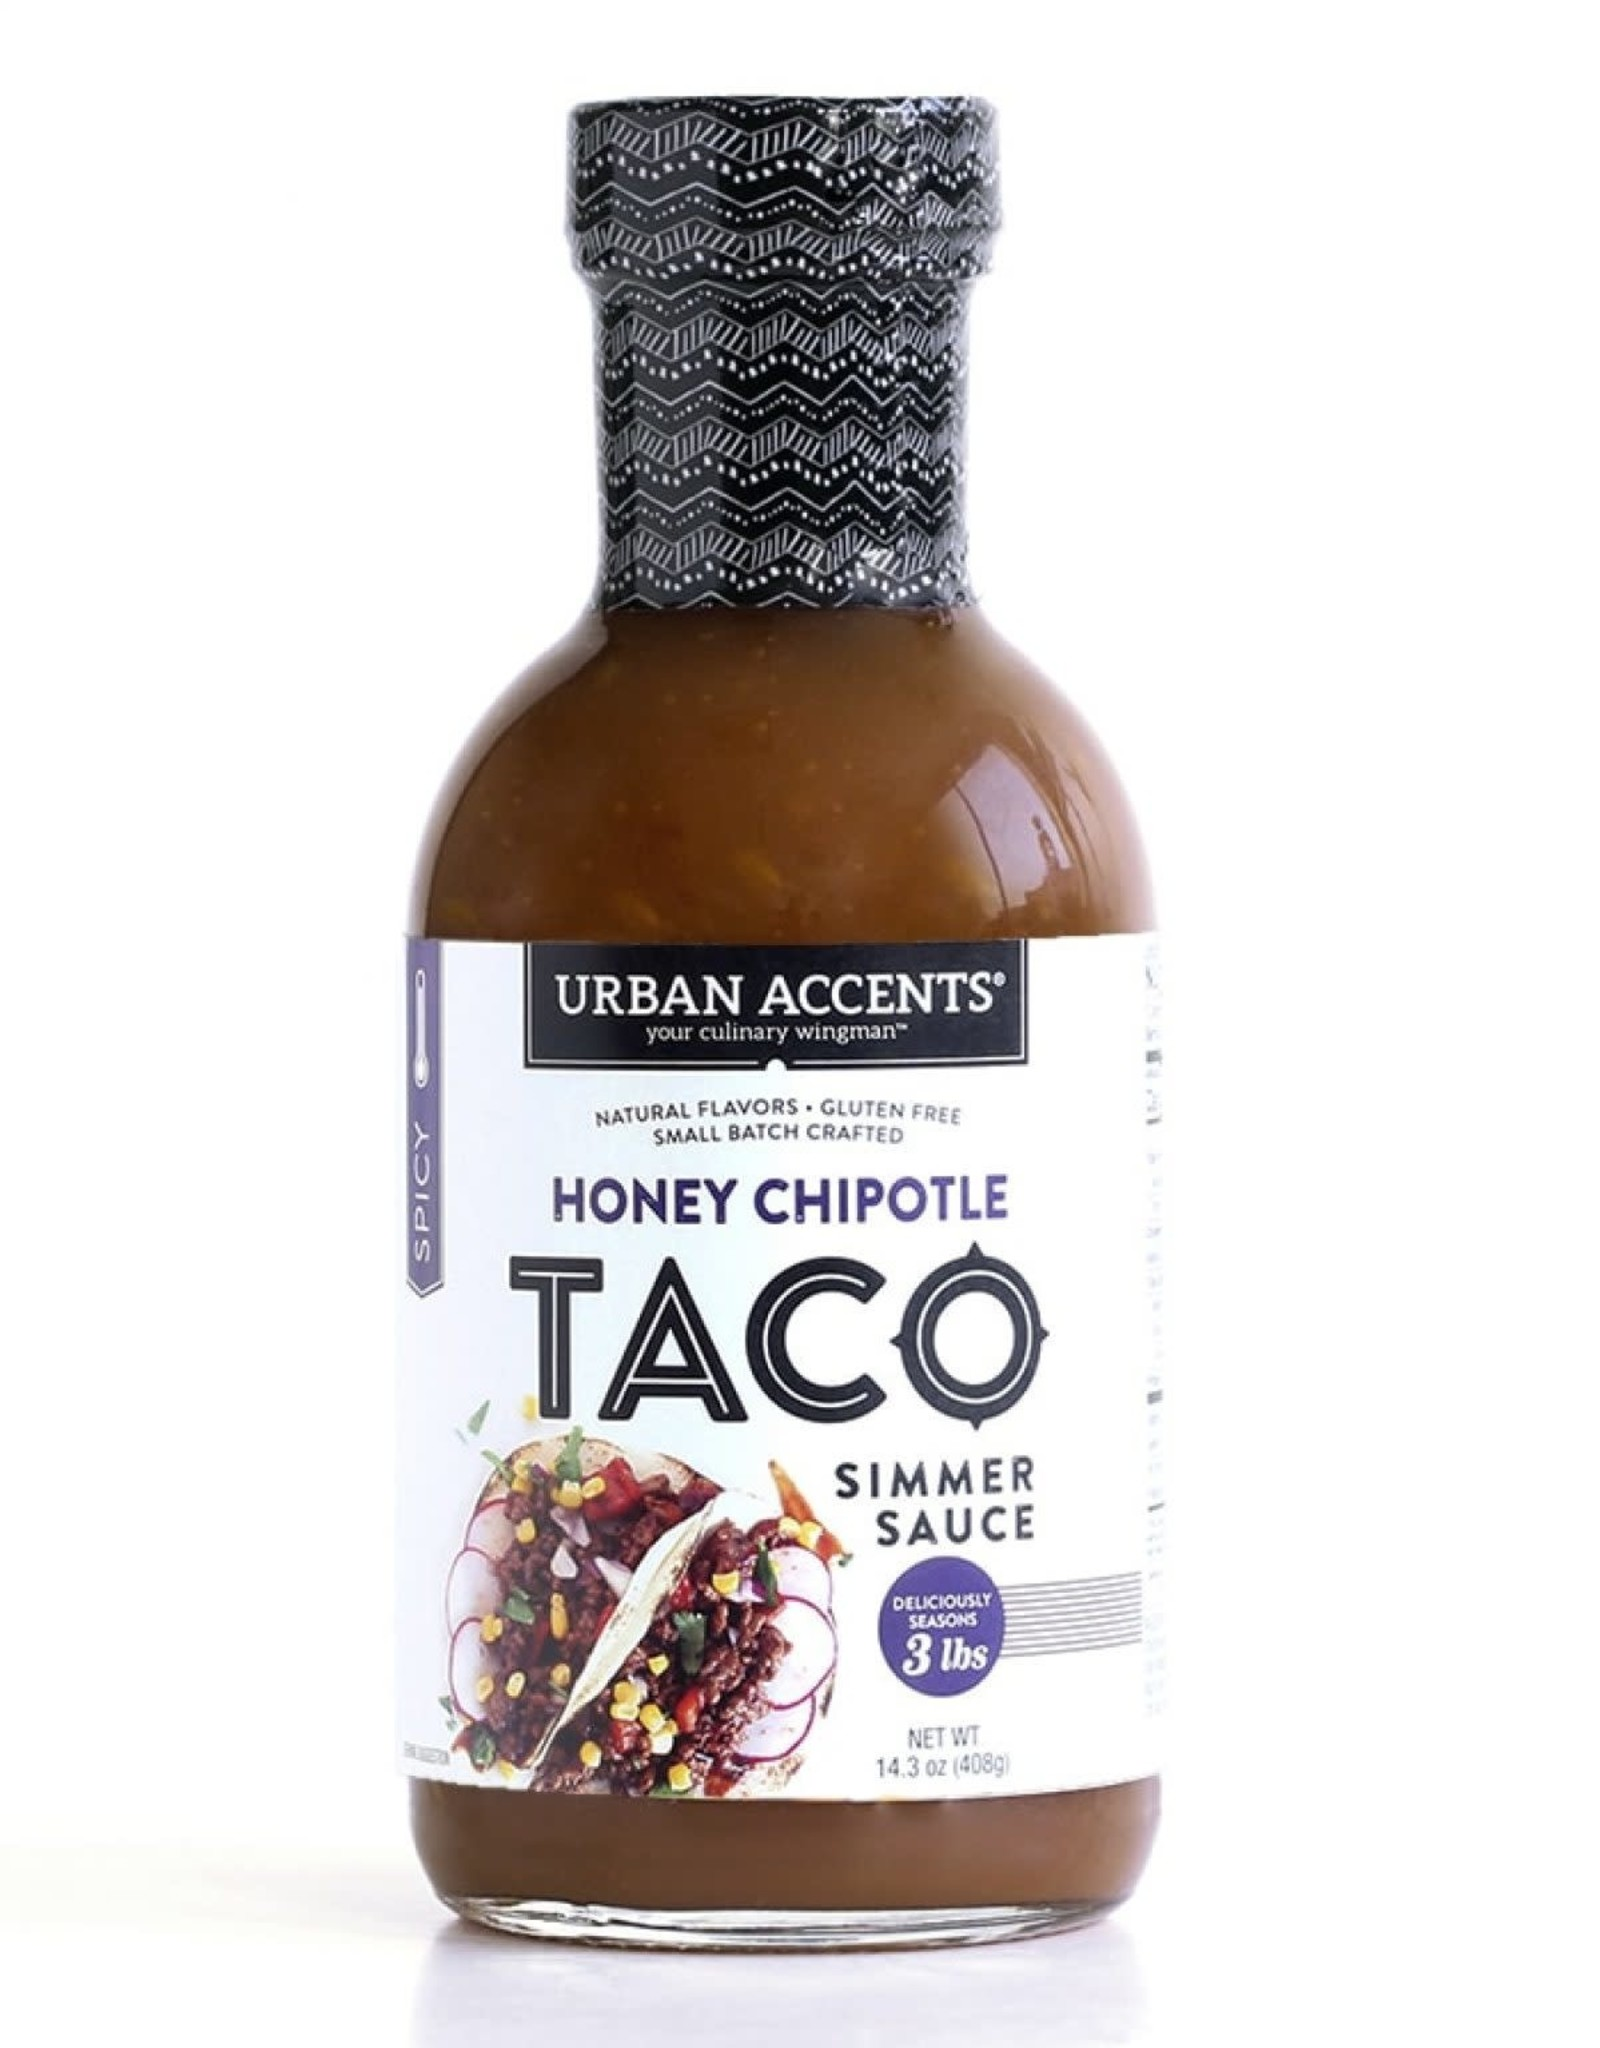 Urban Accents Honey Chipotle Taco Sauce